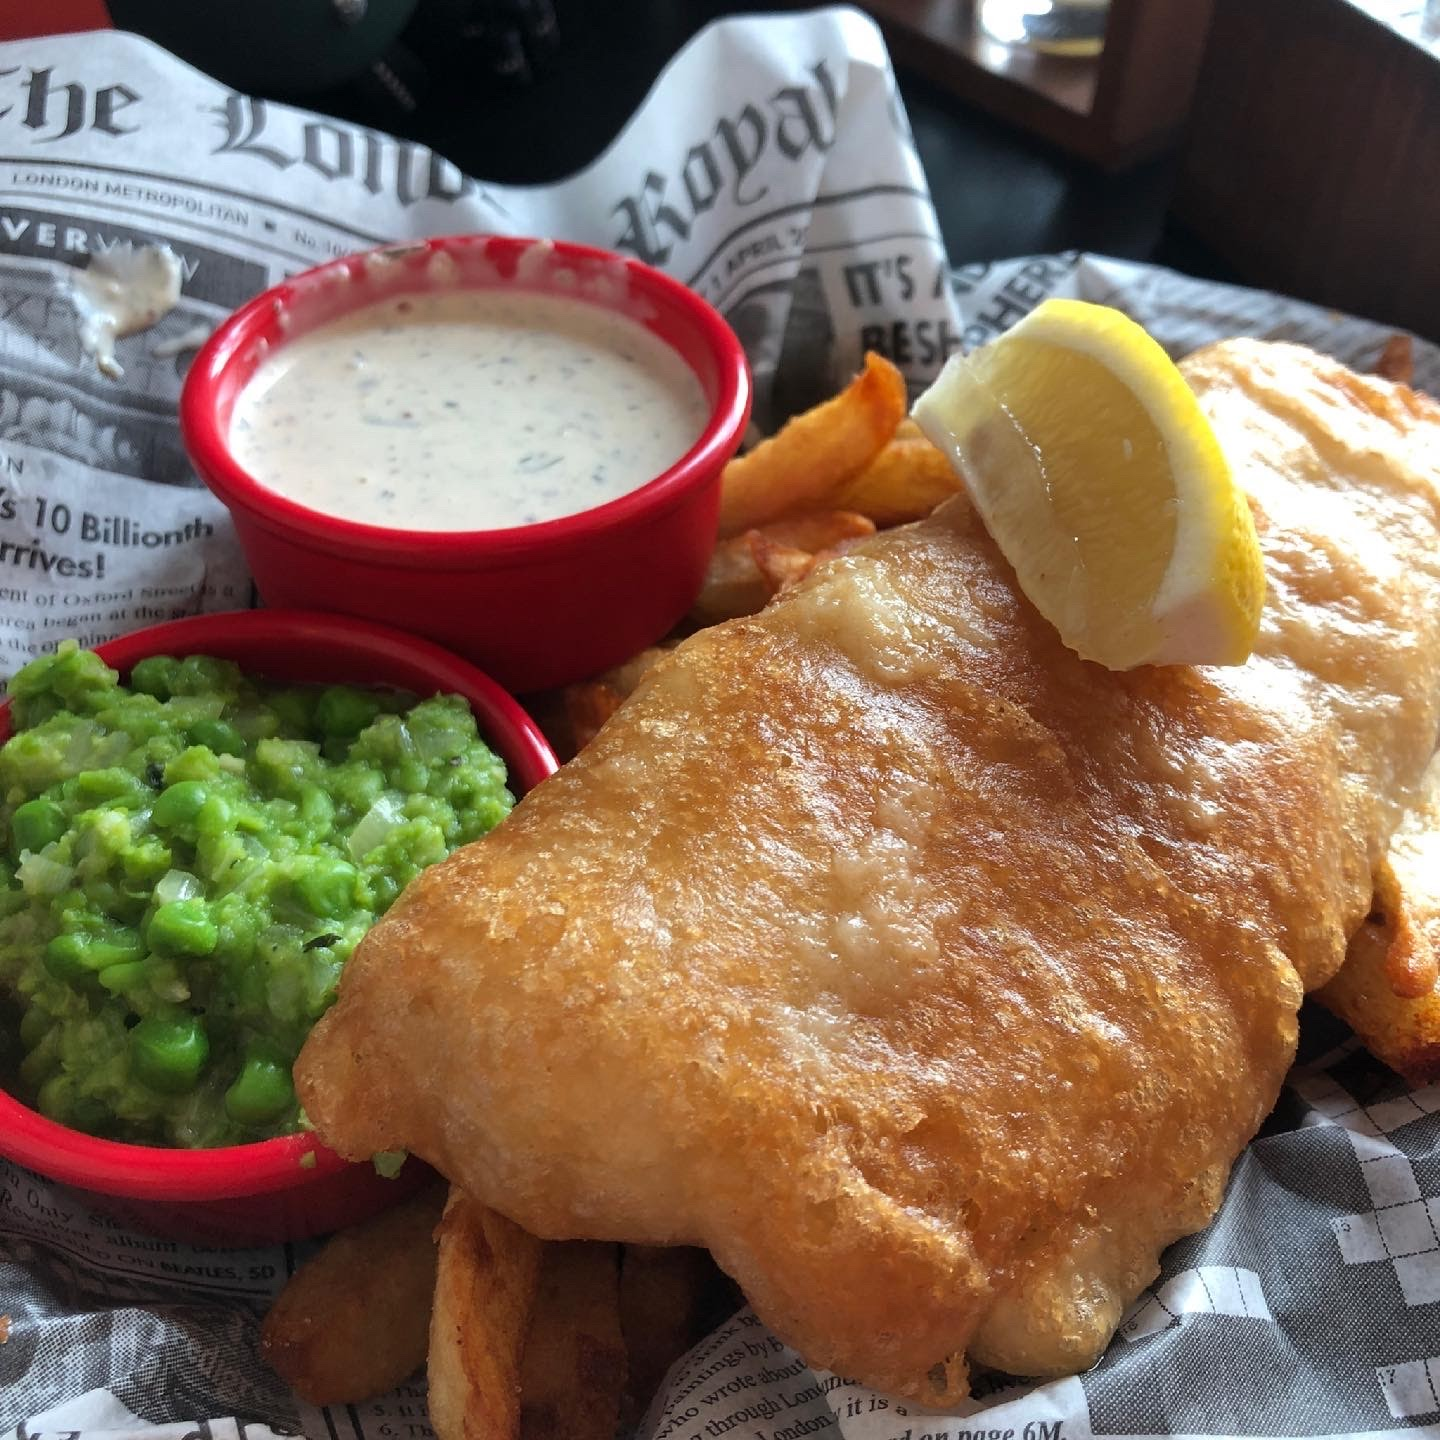 Image shows fried fish with chips and green mushy peas